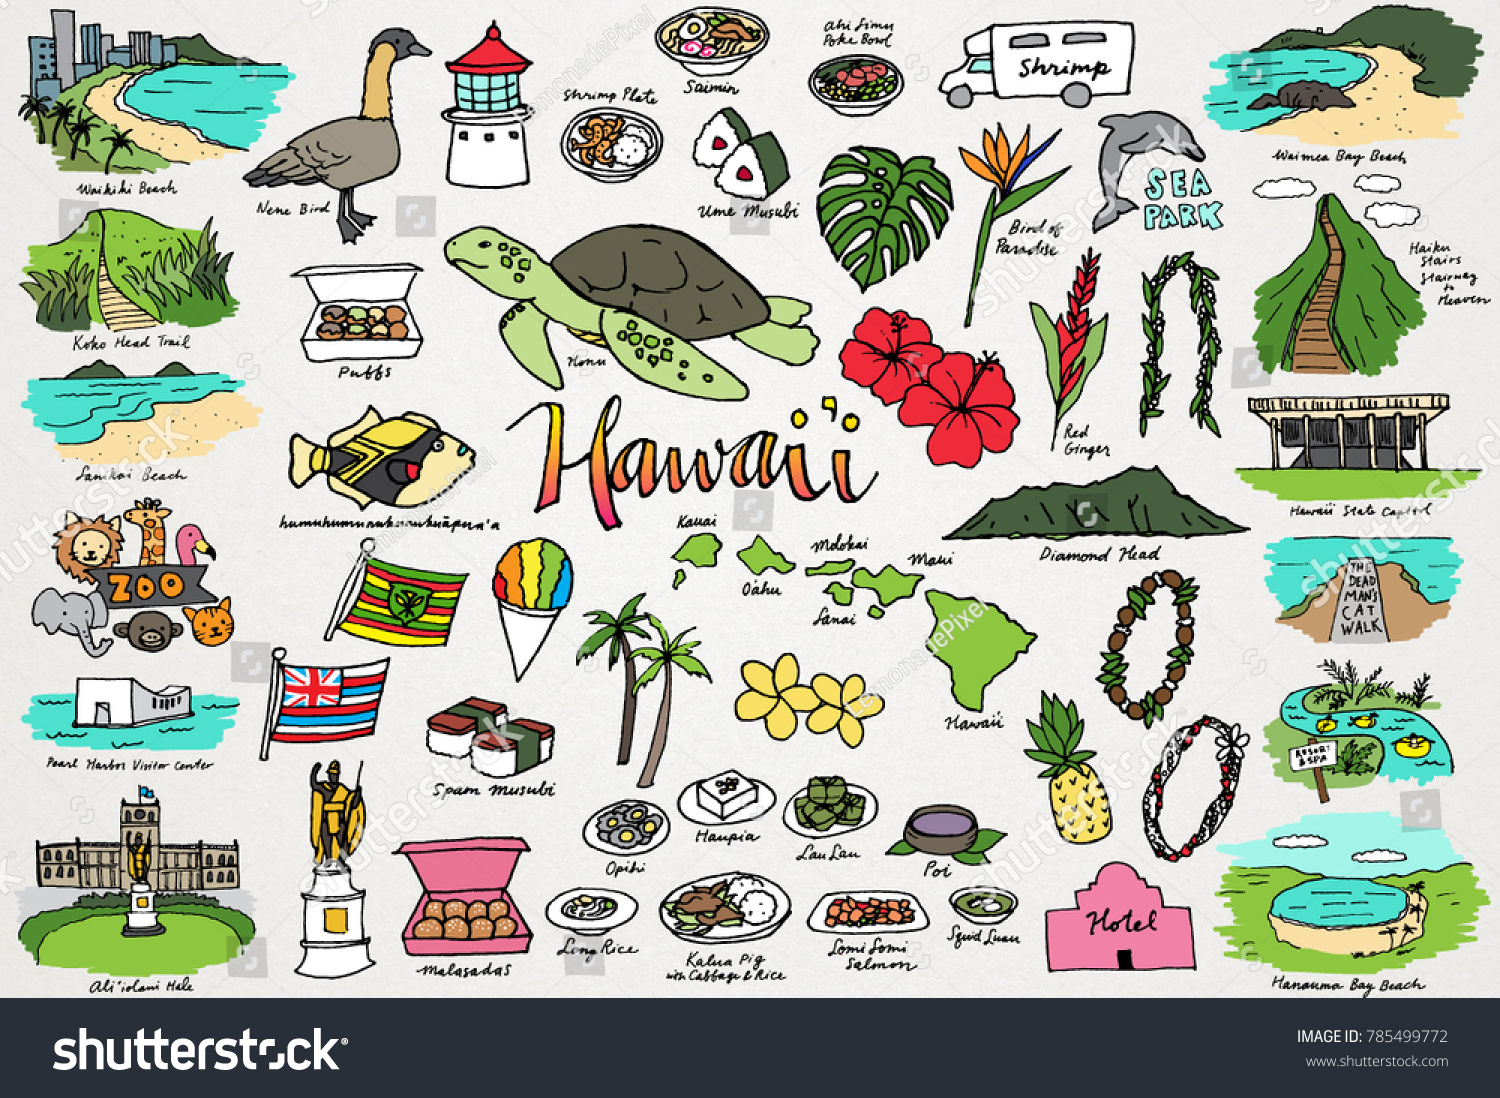 hight resolution of hawaii tropical island clipart set hawaiian flowers beaches plants nature